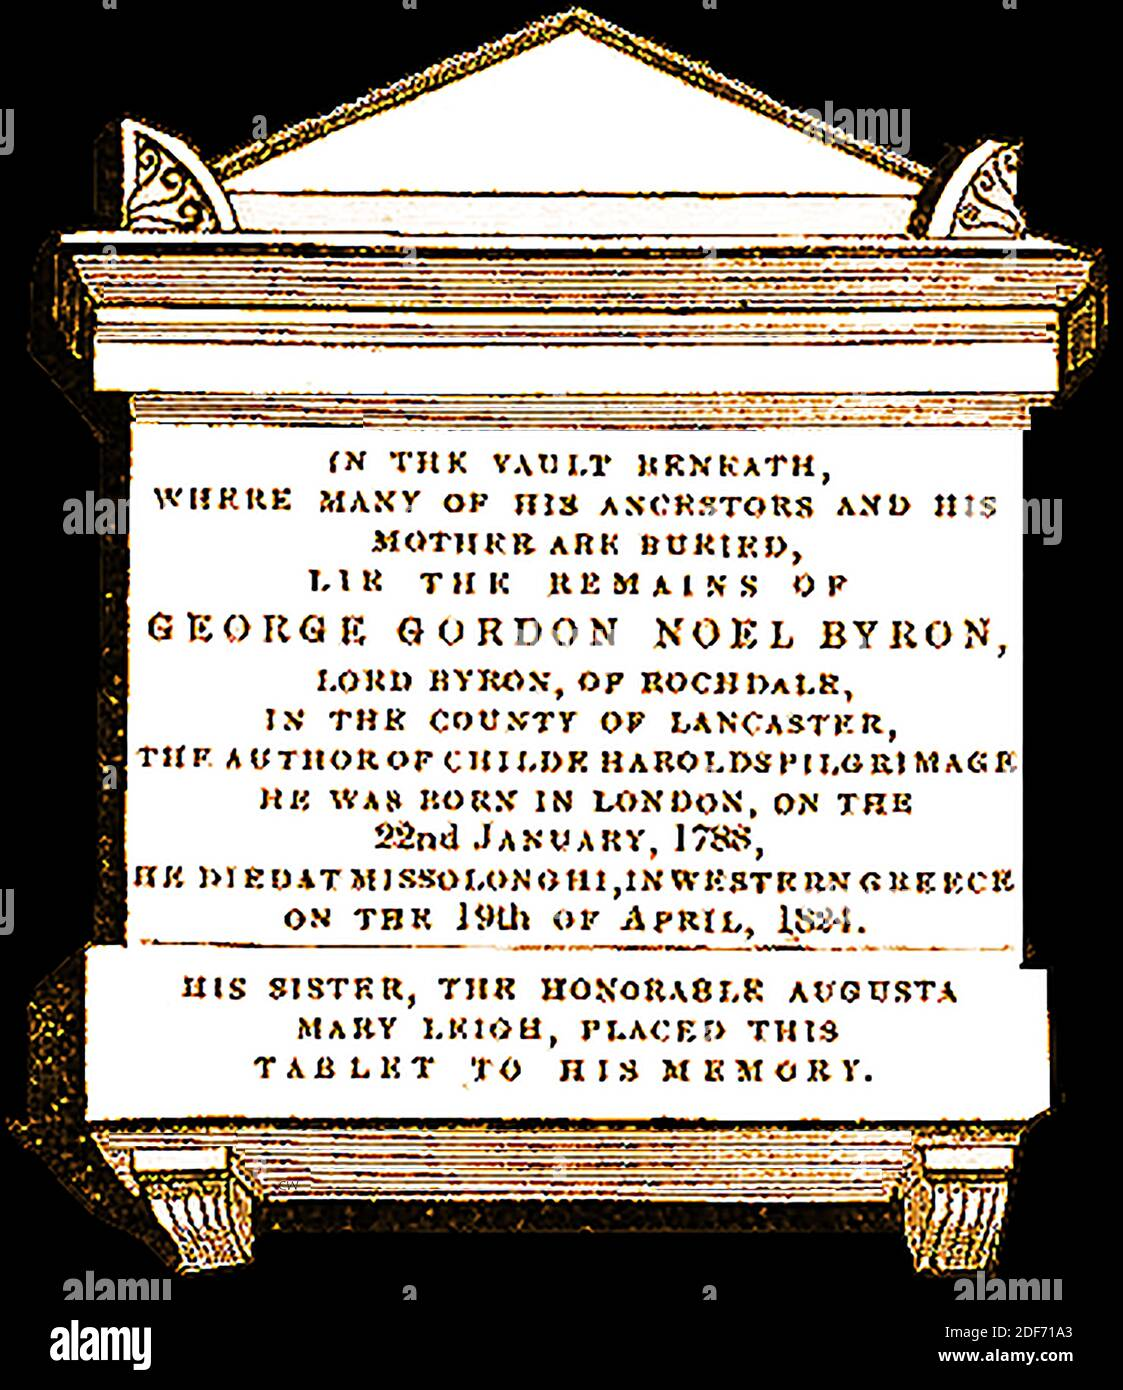 Memorial tablet above the grave of Lord Byron (George Gordon Noel Byron - Lord Byron of Rochdale ) , Peer, poet and politician , at St Mary Magdalene church Hucknall, Nottinghamshire, England in 1842. He added the name Noel to his own   so as to inherit half of the  estate of his mother in law Judith Noel, the Honorable  Lady Milbanke Stock Photo